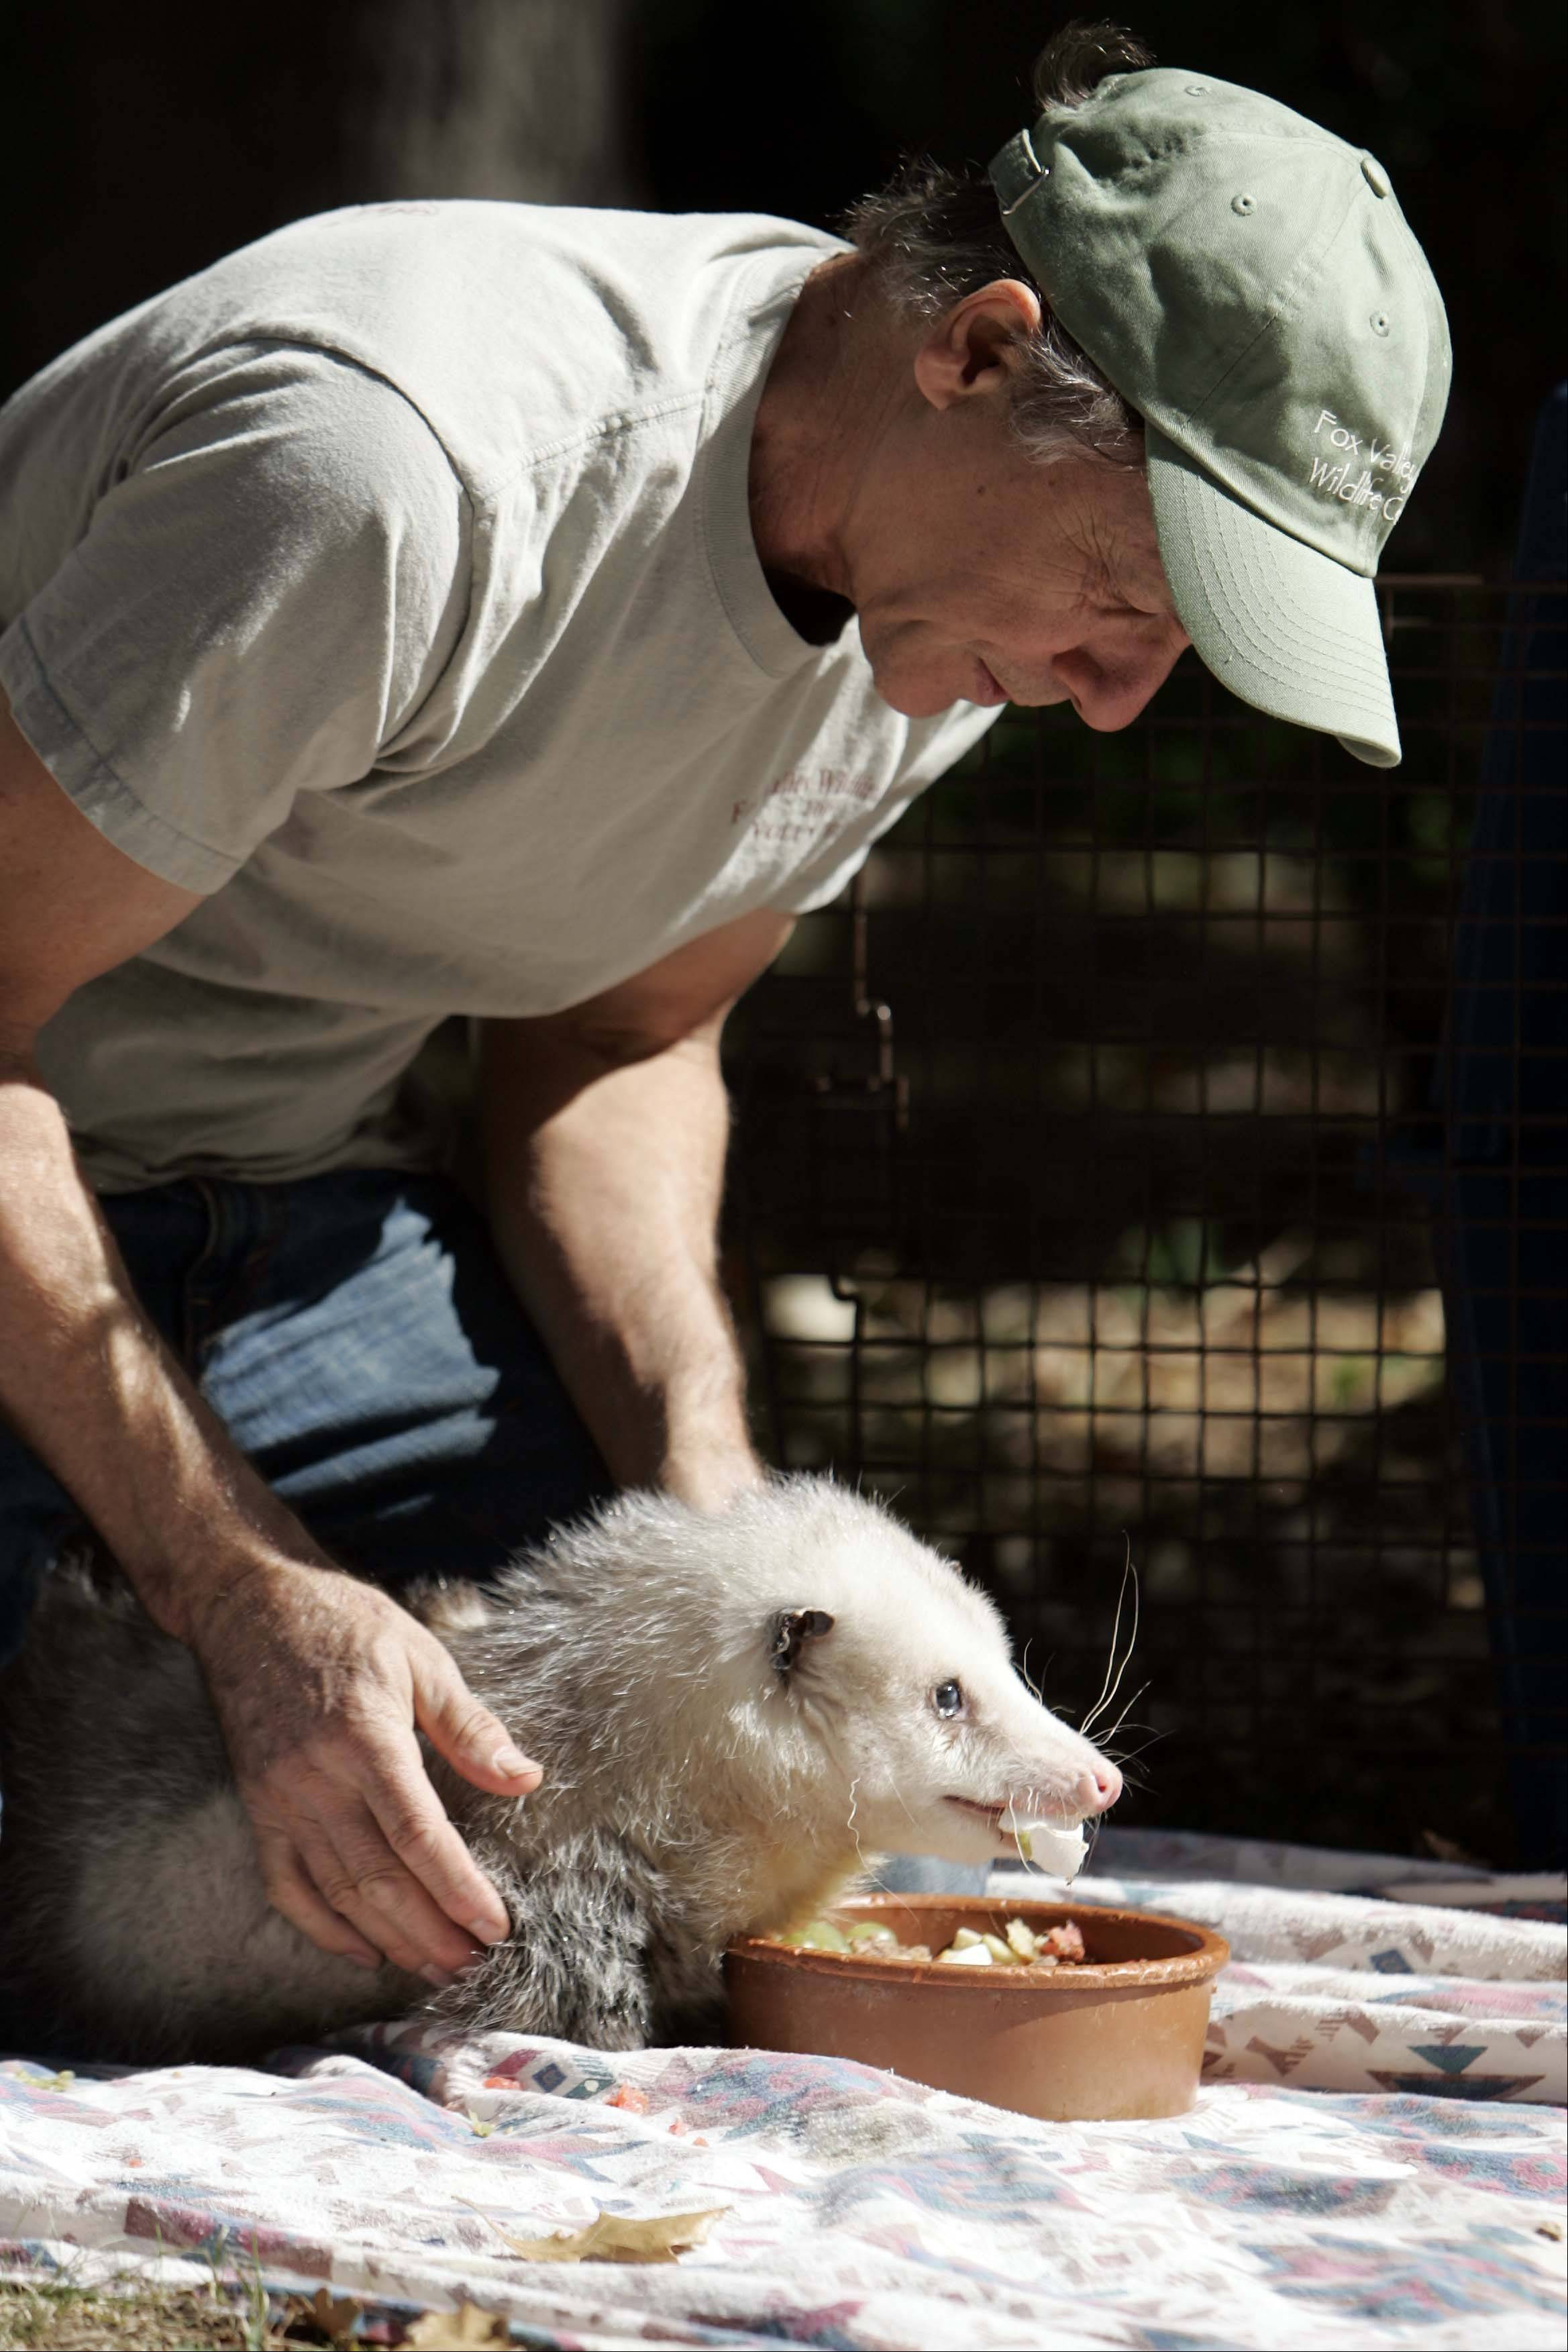 The Fox Valley Wildlife Center is taking entries for its annual photo contest. The contest and the annual winter dinner are fundraisers to support the center, which relies on donations and volunteers, such as Steve Wallace of South Elgin helping out this opposum, to care for injured mammals, birds, reptiles and amphibians.